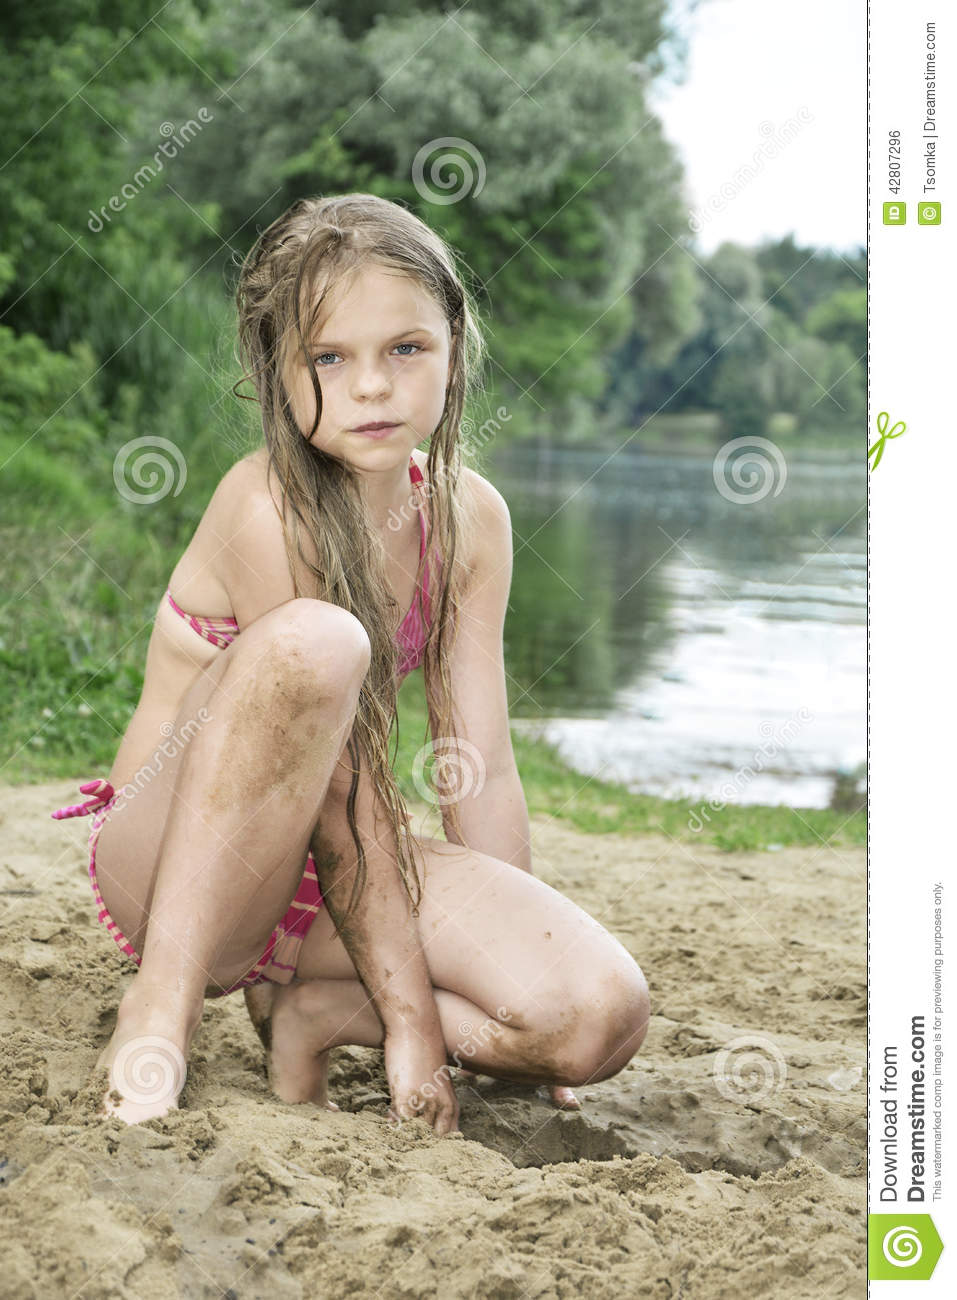 Girl With Long Hair Sitting On The Sand On The Beach Near